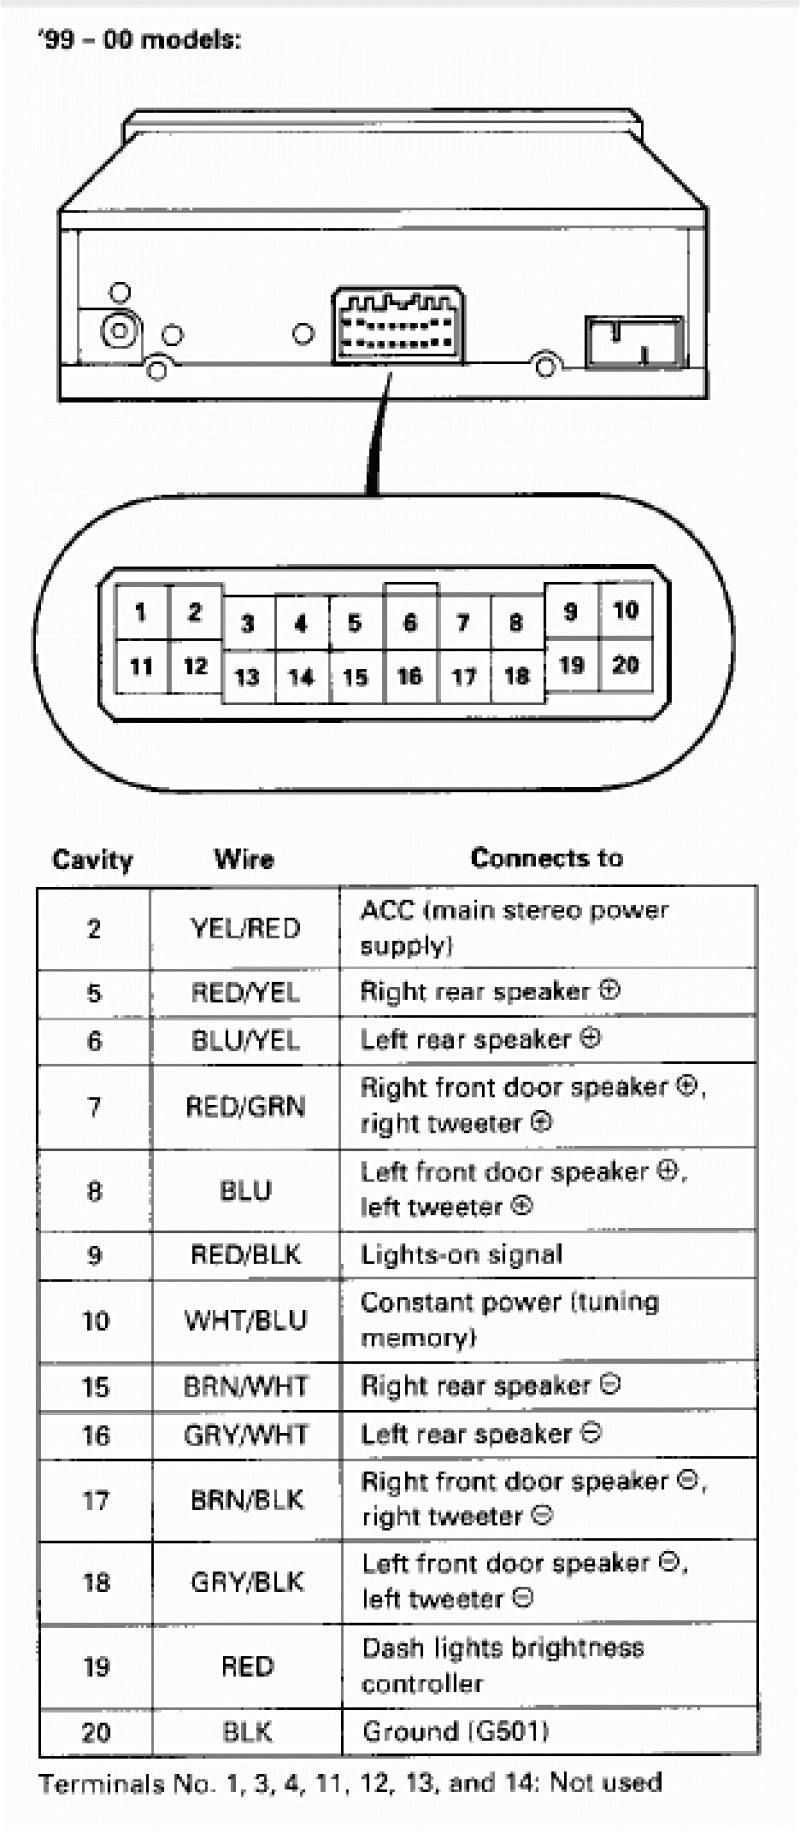 Pin By K Brown On 1999 Honda Civic Radio Pinterest 99 Sport Fuse Box Diagram